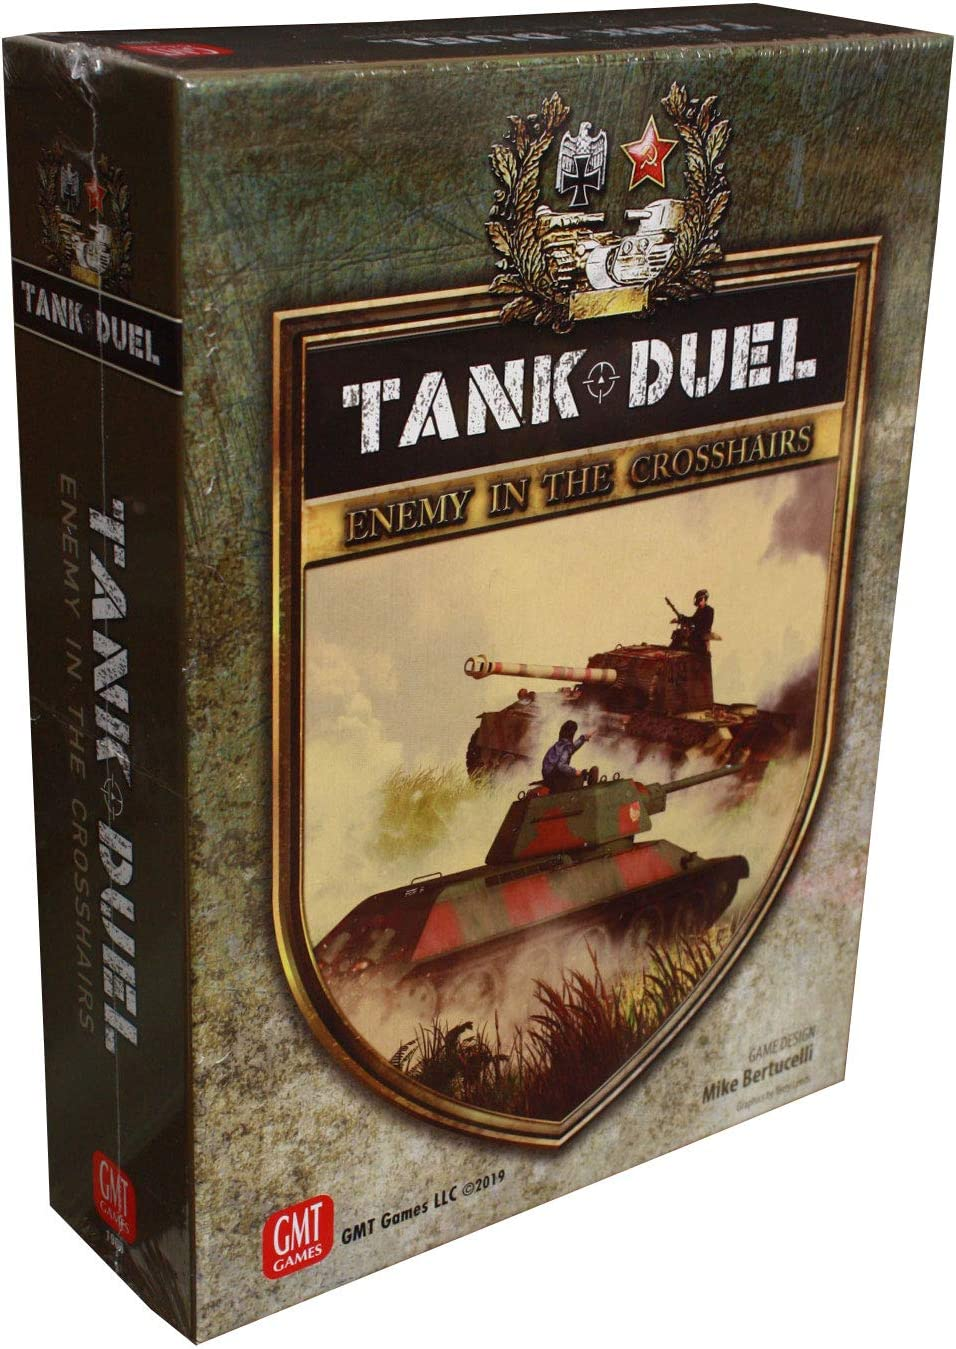 Tank Duel: Enemy in The Crosshairs: Amazon.co.uk: Toys & Games